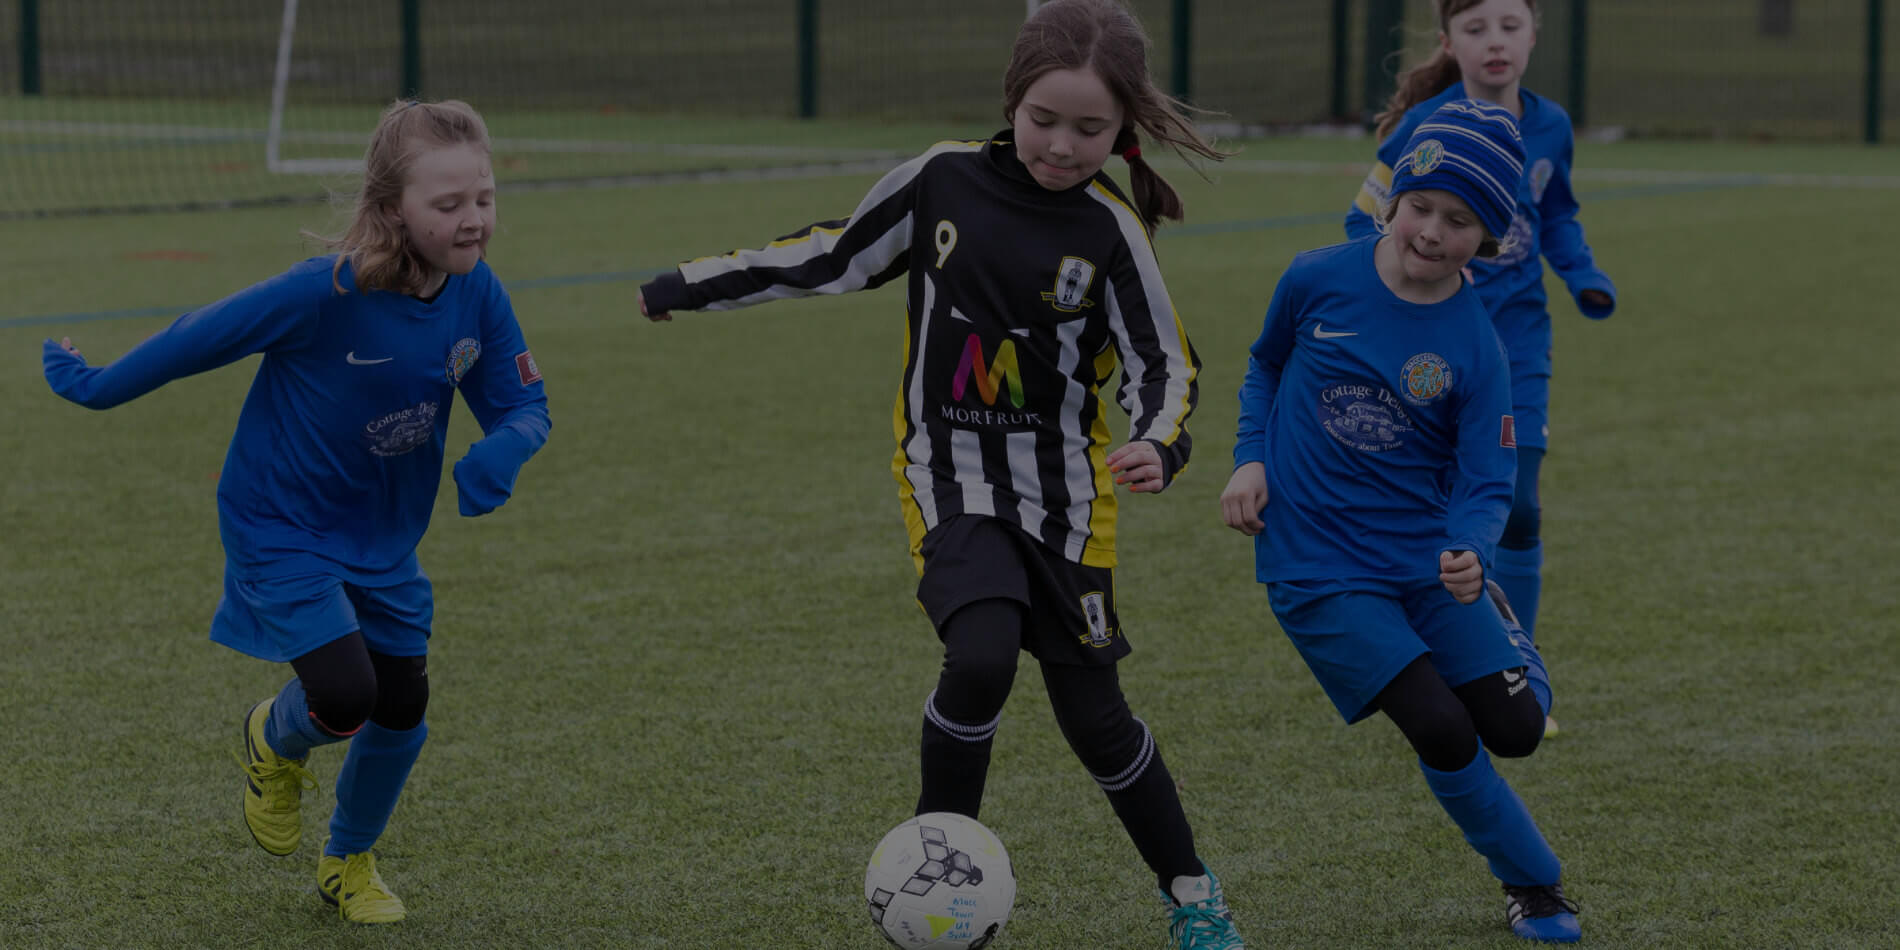 Cheshire Girls Football League